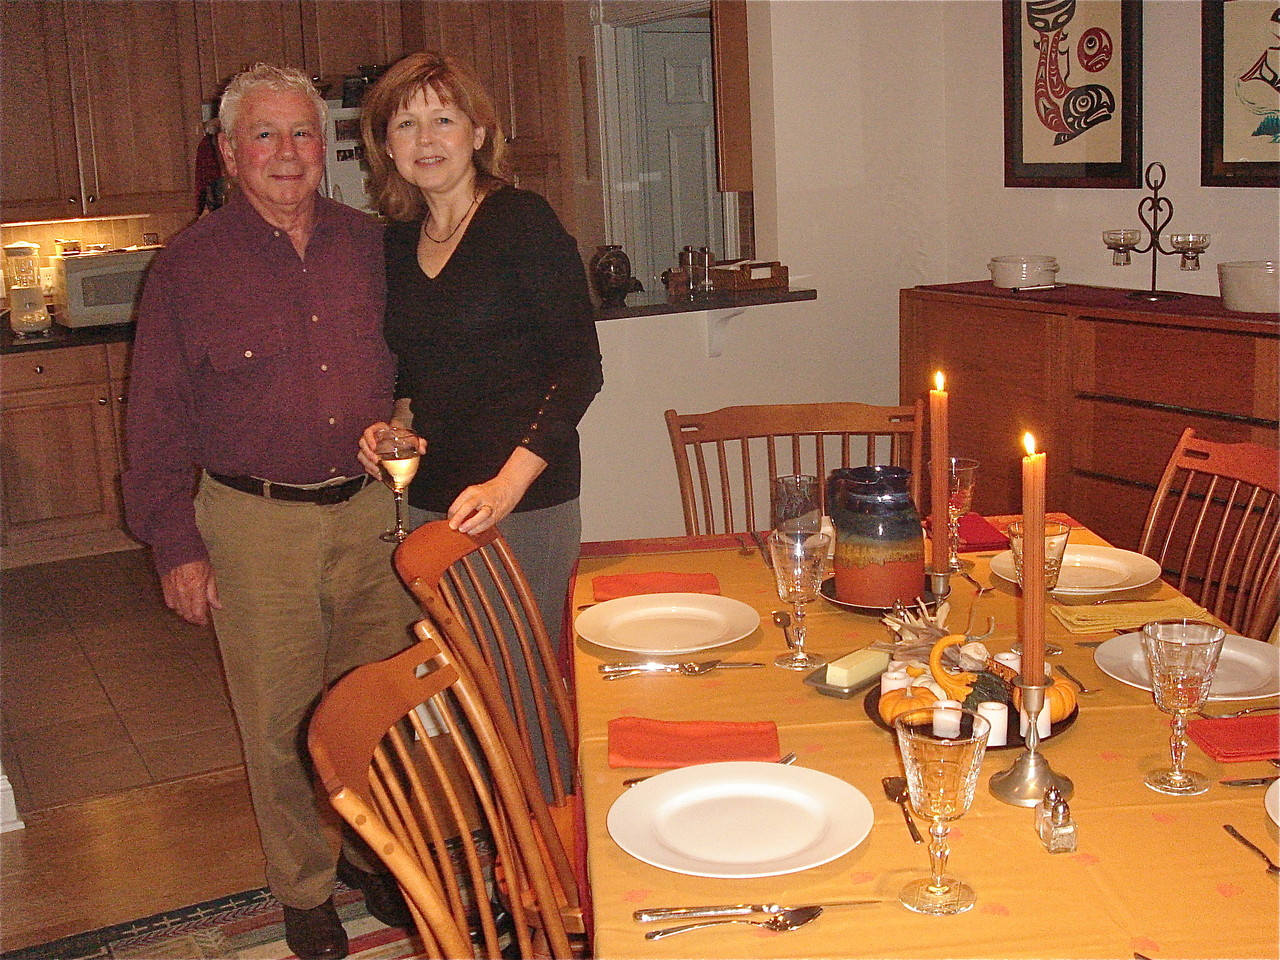 Don & Barbara before dinner at their home